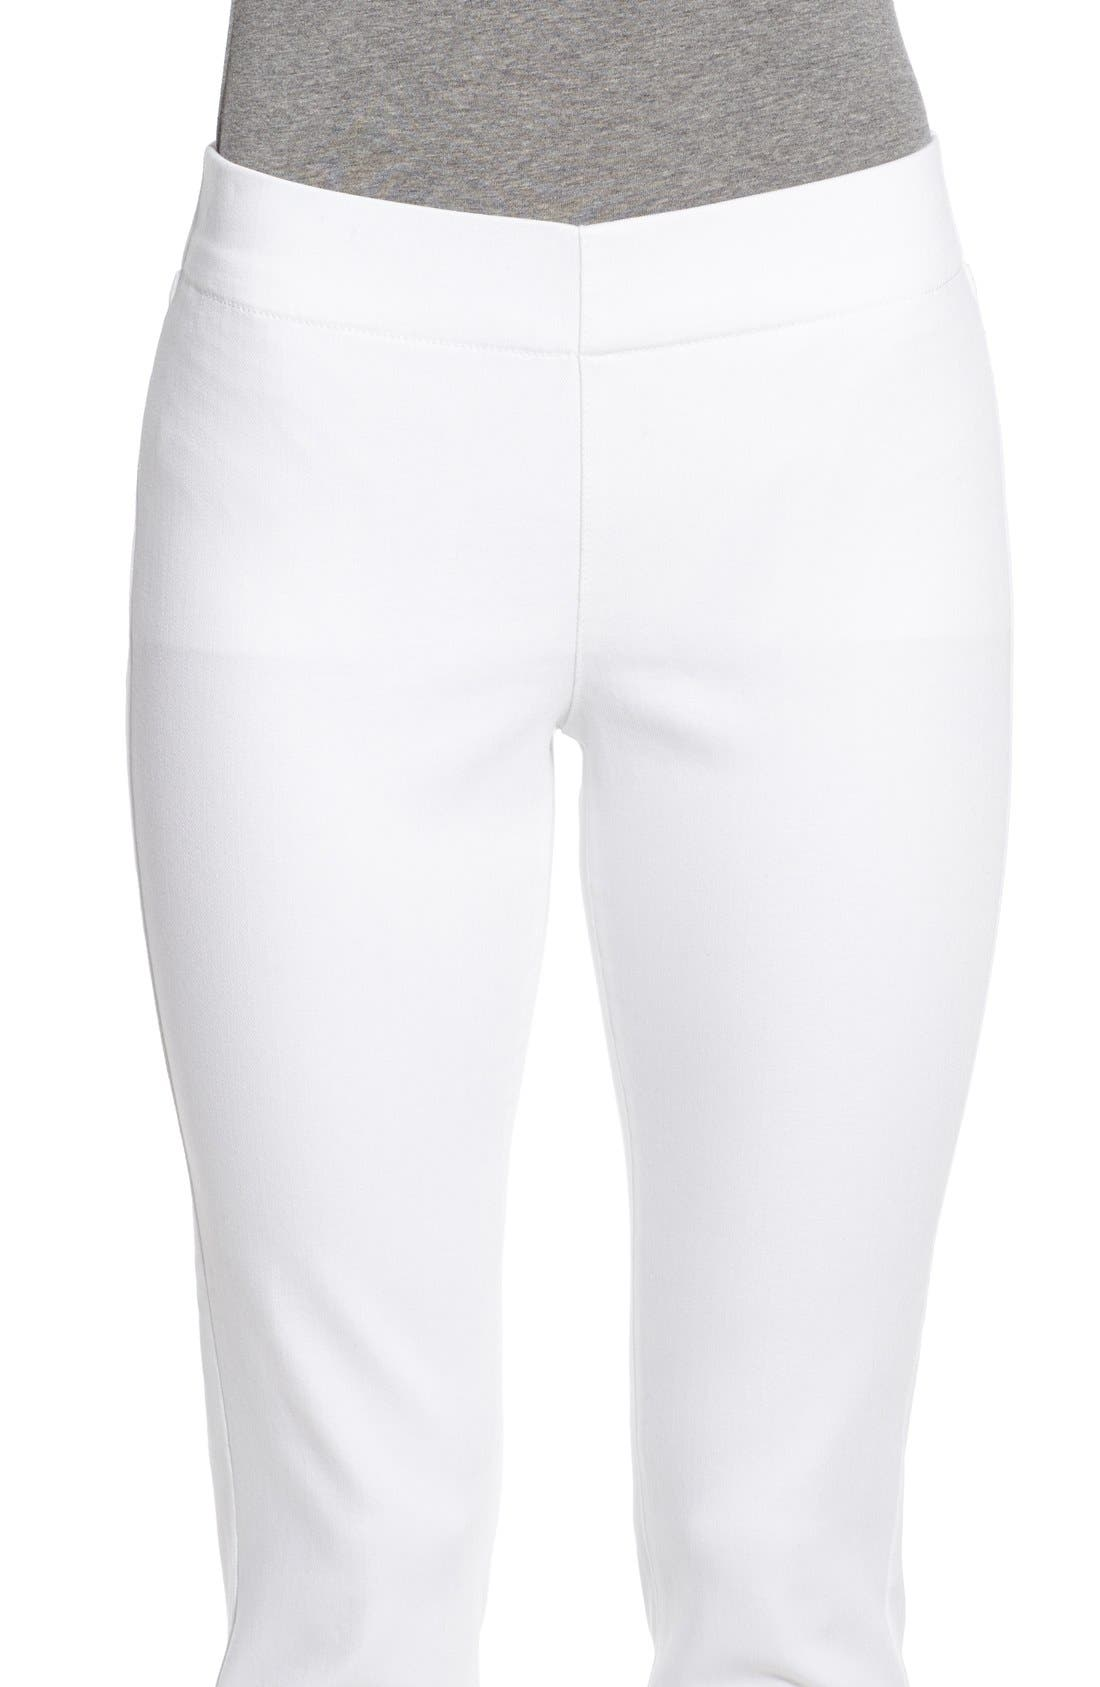 'Millie' Pull-On Stretch Ankle Skinny Jeans,                             Alternate thumbnail 4, color,                             Endless White